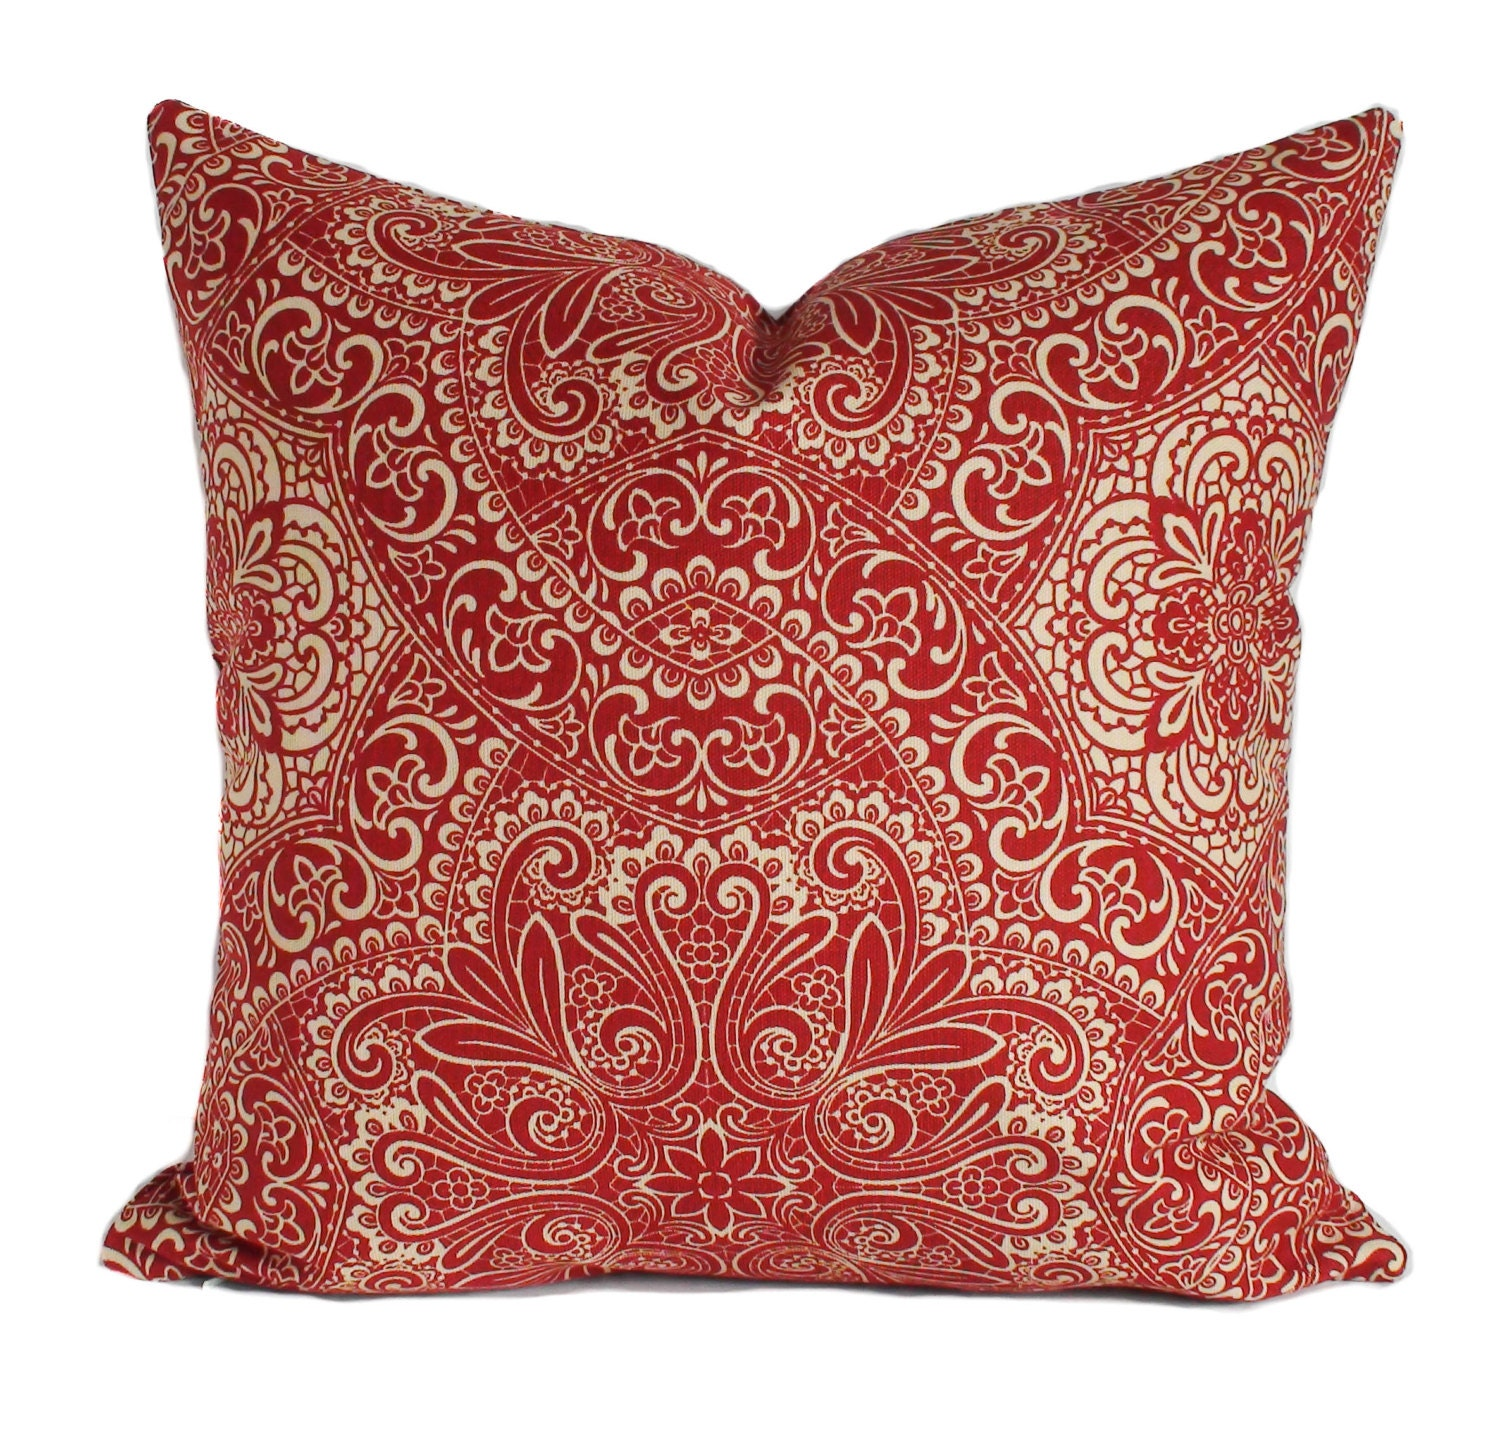 Throw Pillow Red : Red pillow cover Decorative pillow Red throw pillow